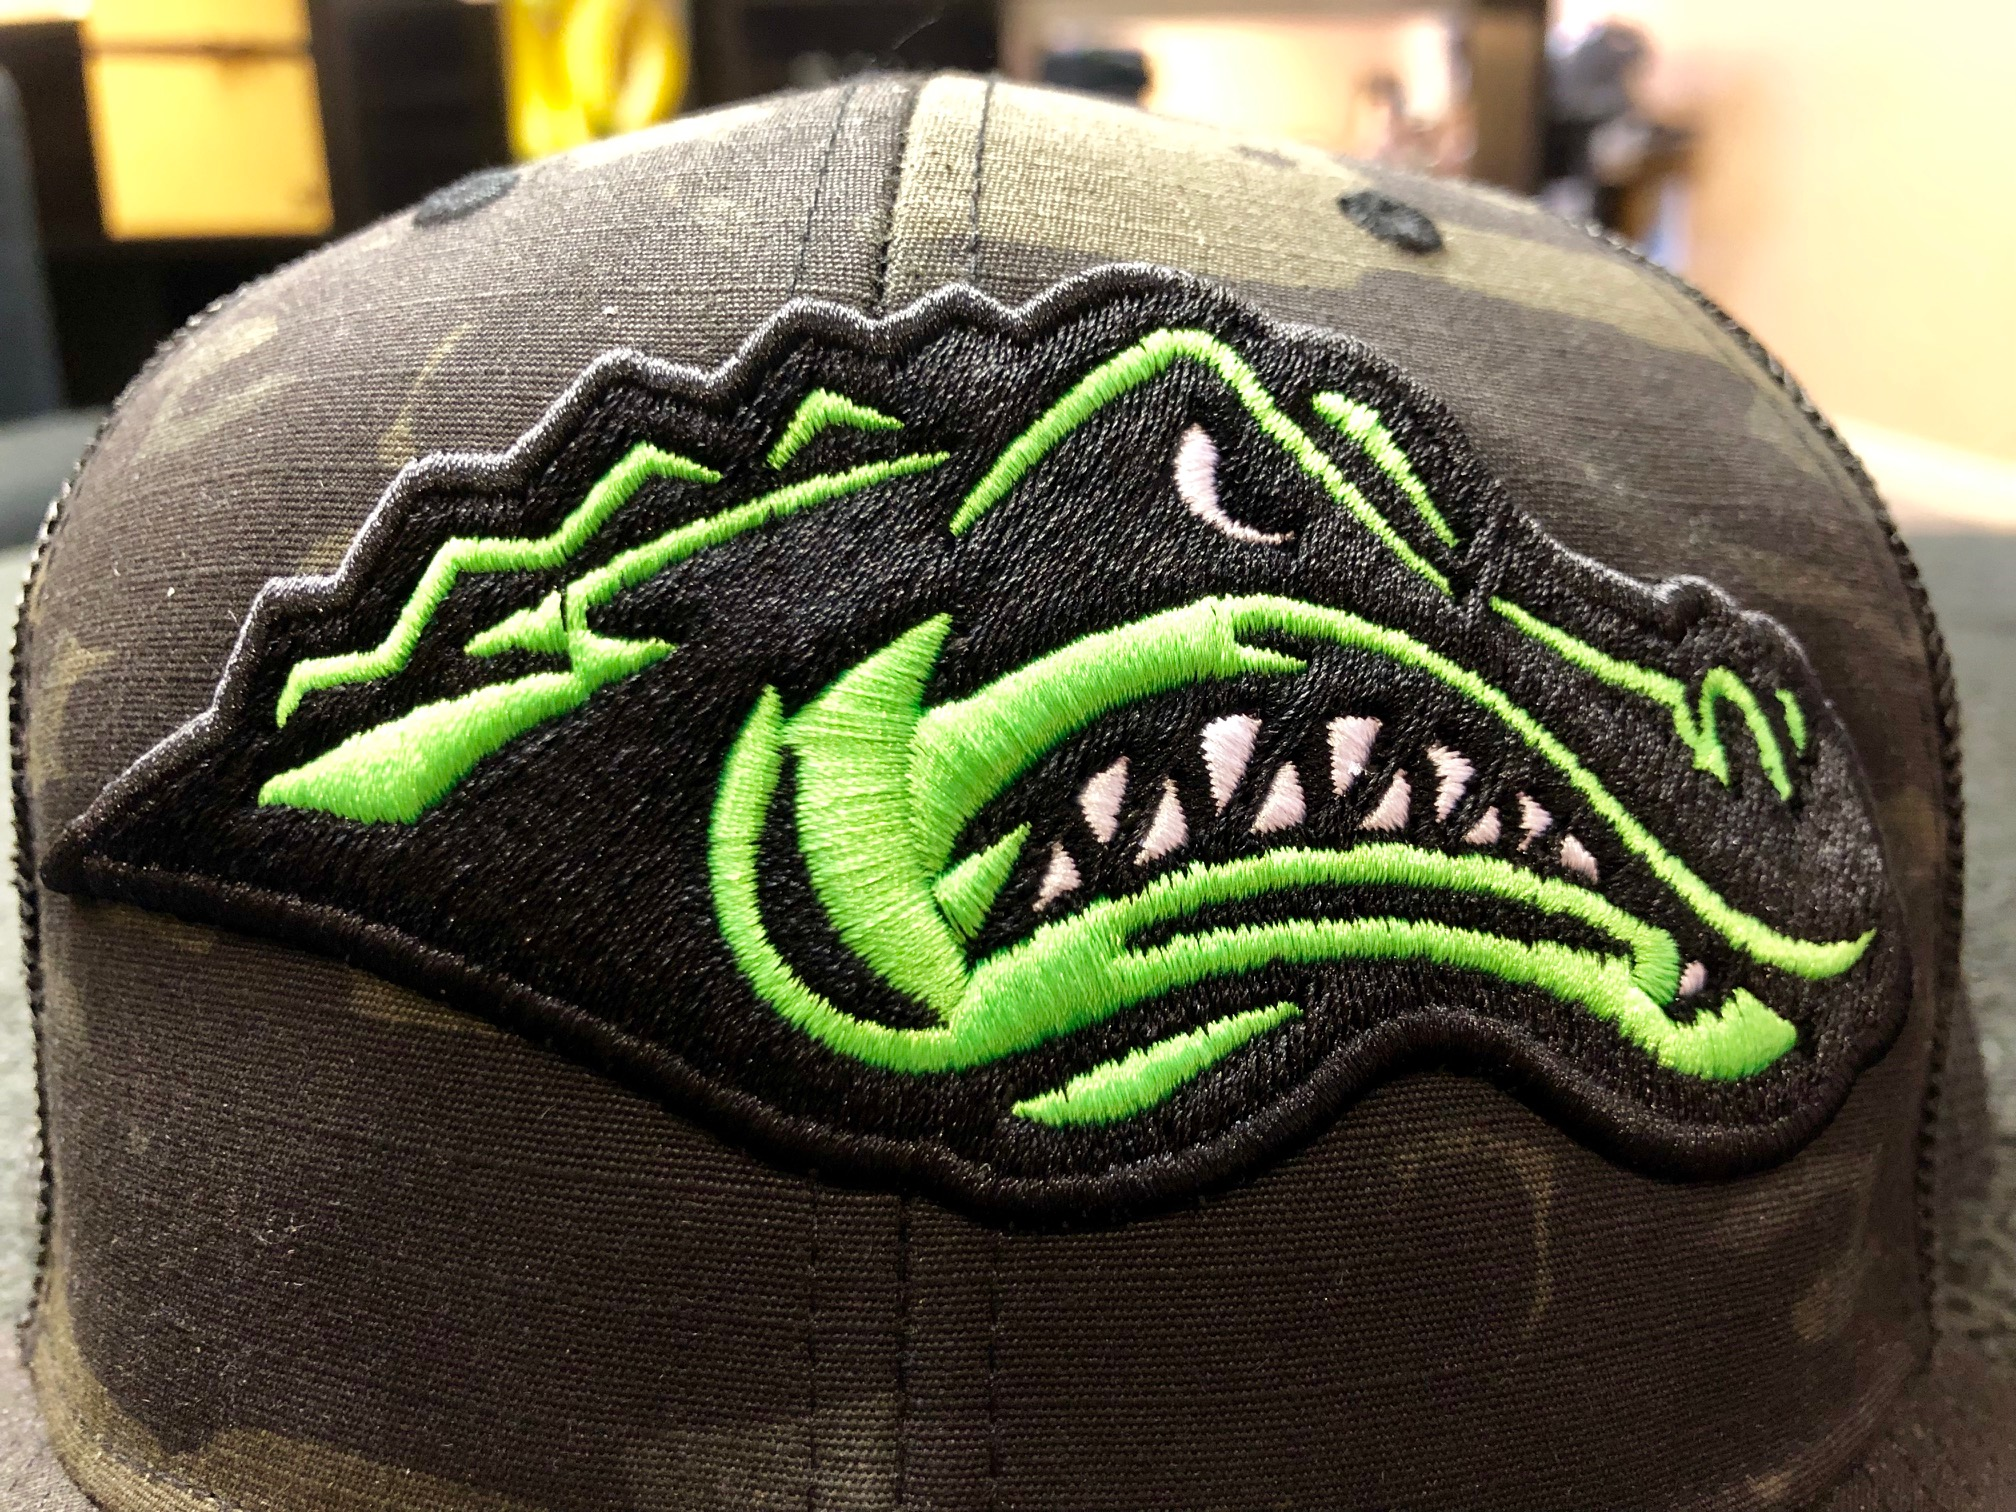 logounltd_laser_etching_embroidery_screen_printing_apparel_uniform_custom_tshirts_kirkland_bellevue_seattle_redmond_woodinville_branded_merchandise_promotional_products_logo_unltd_green_river_college_hat (4).jpg